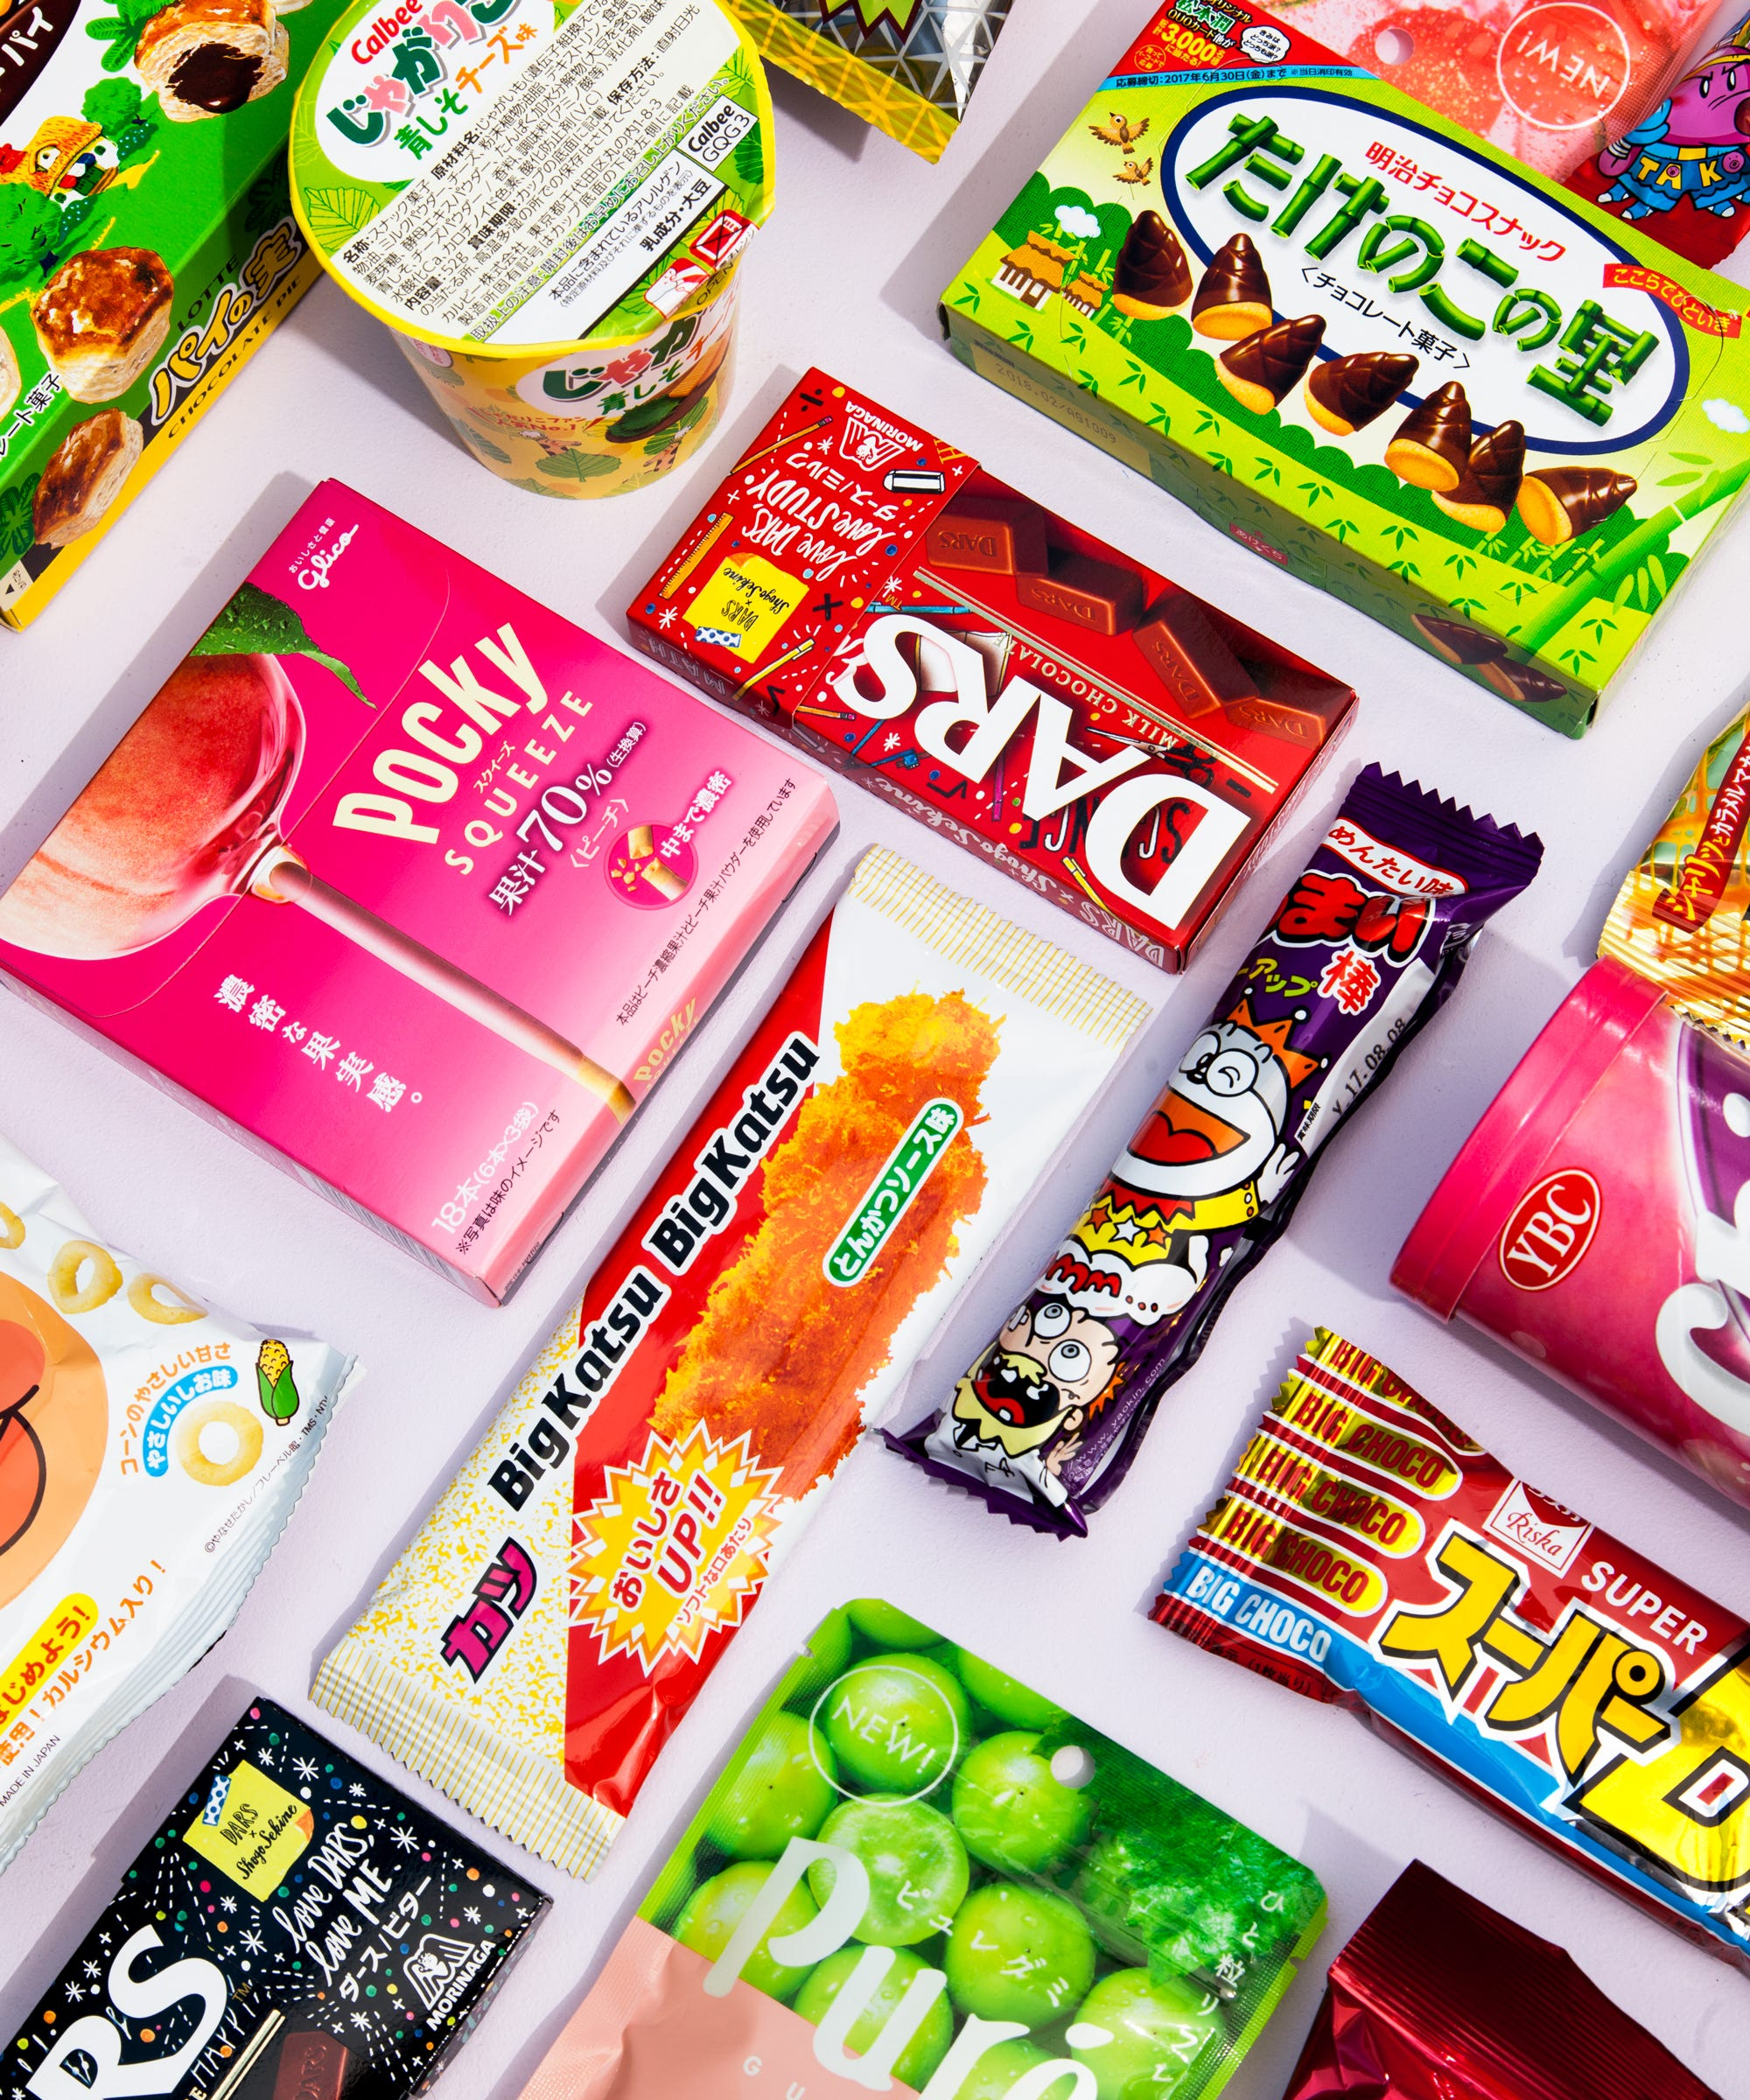 Weird Japanese Food Products 6